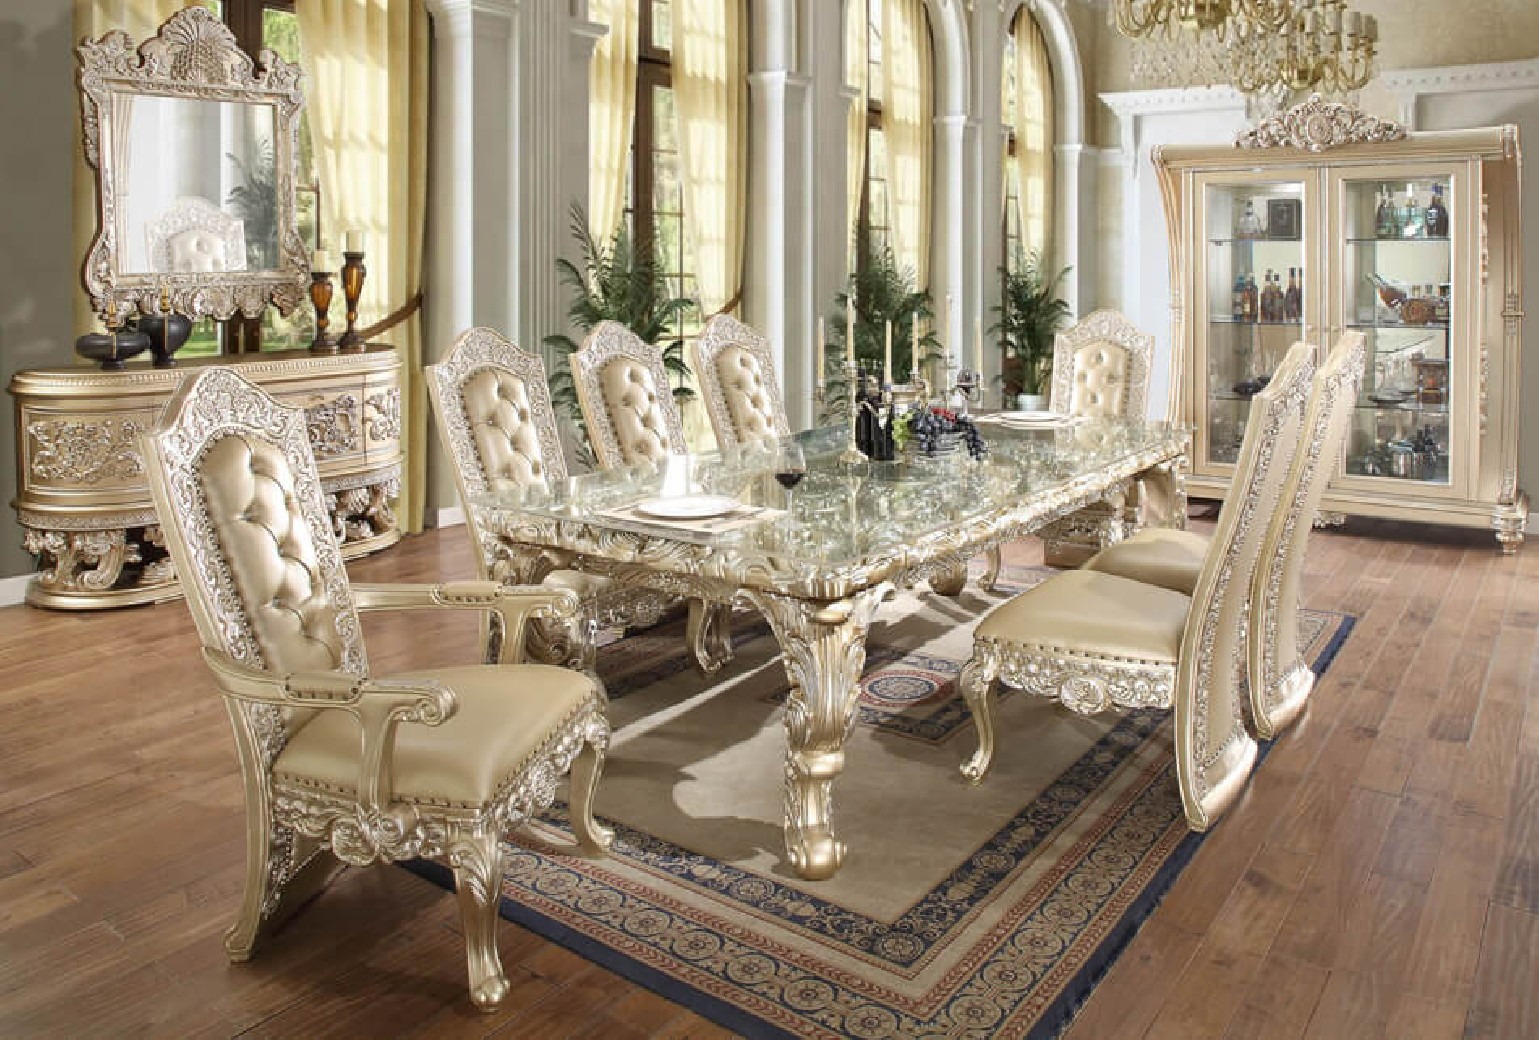 HD 8022 Dining Set Homey Design Victorian, European U0026 Classic